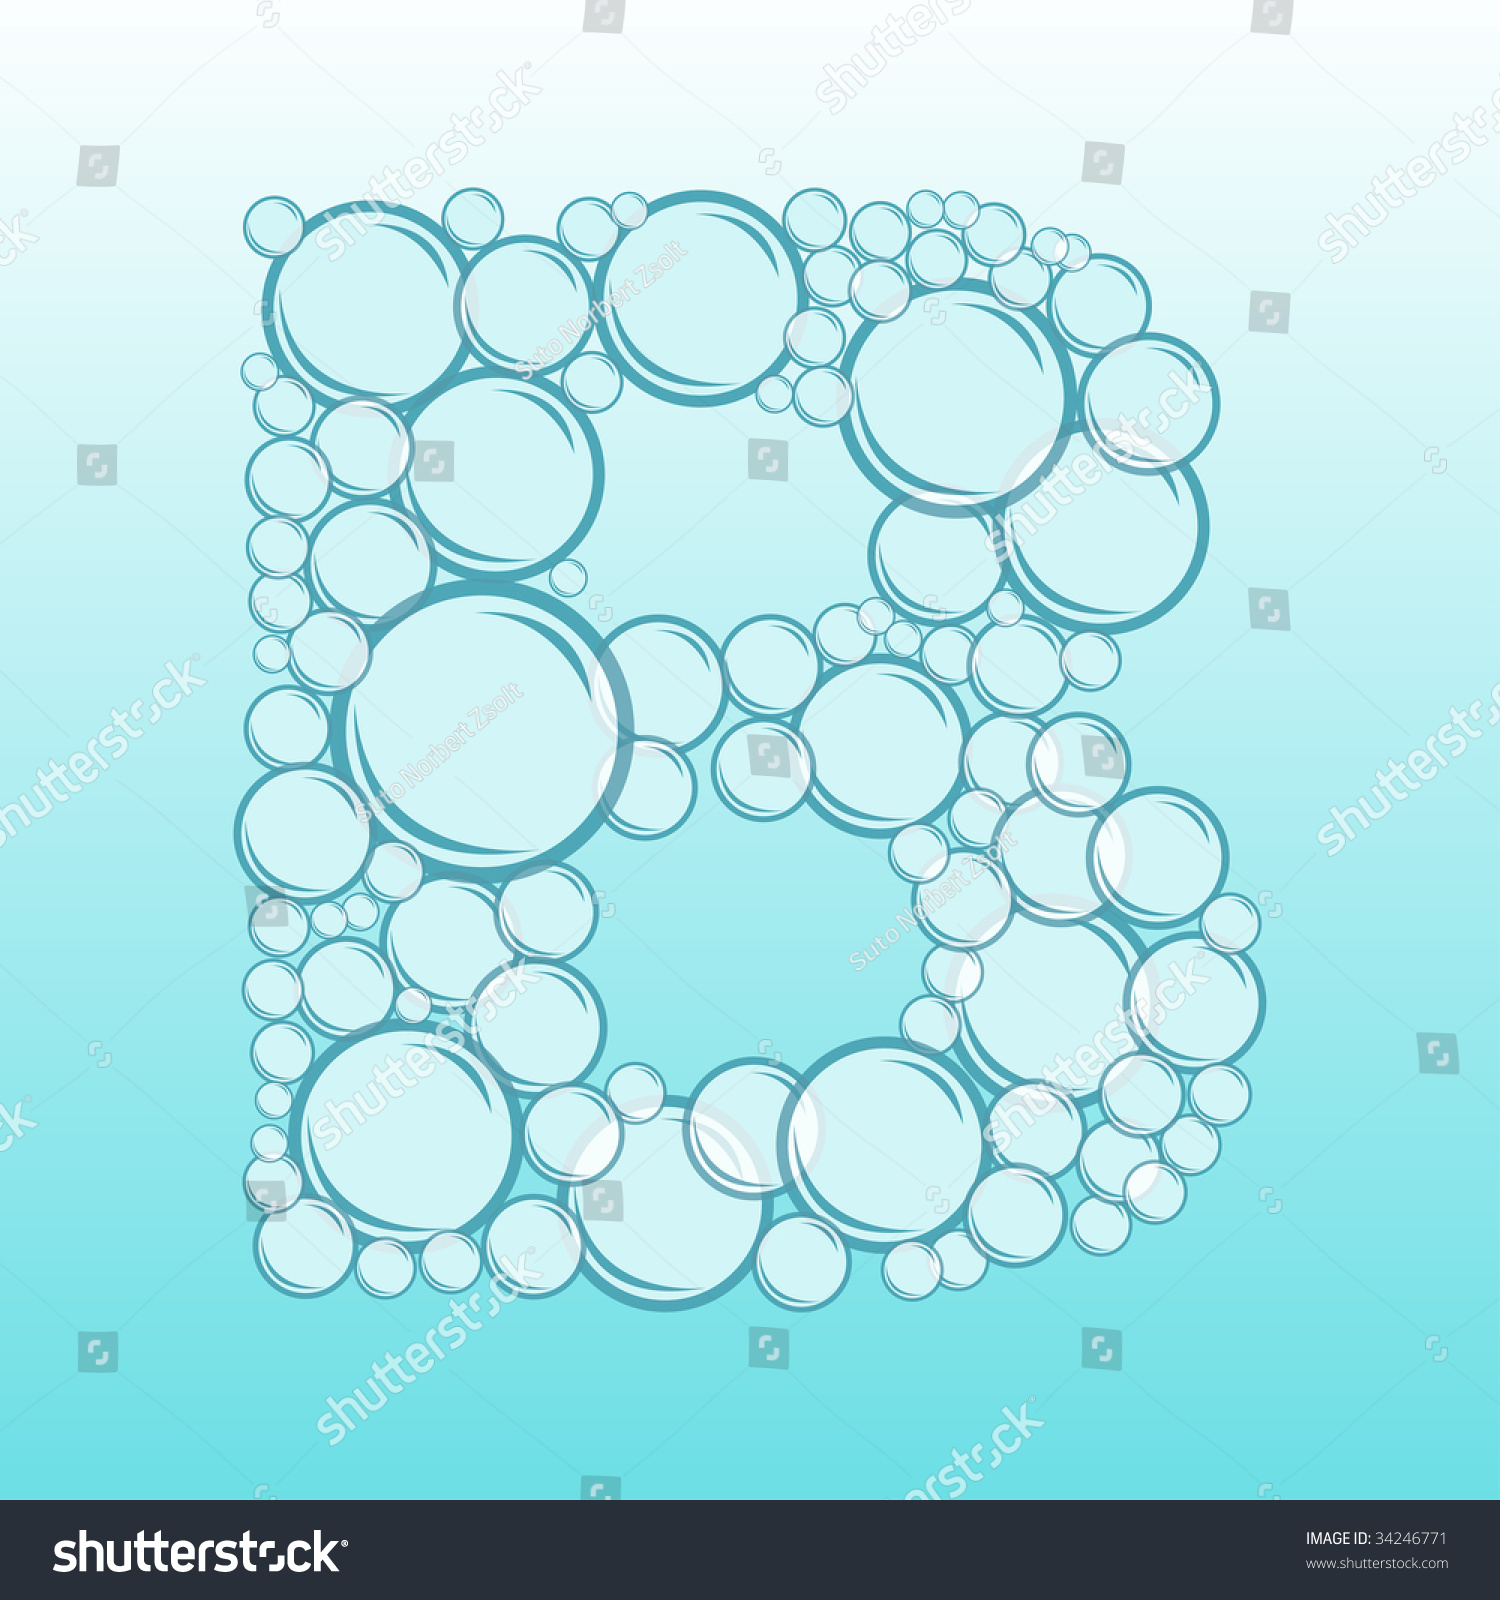 abstract alphabet of water bubbles letter b